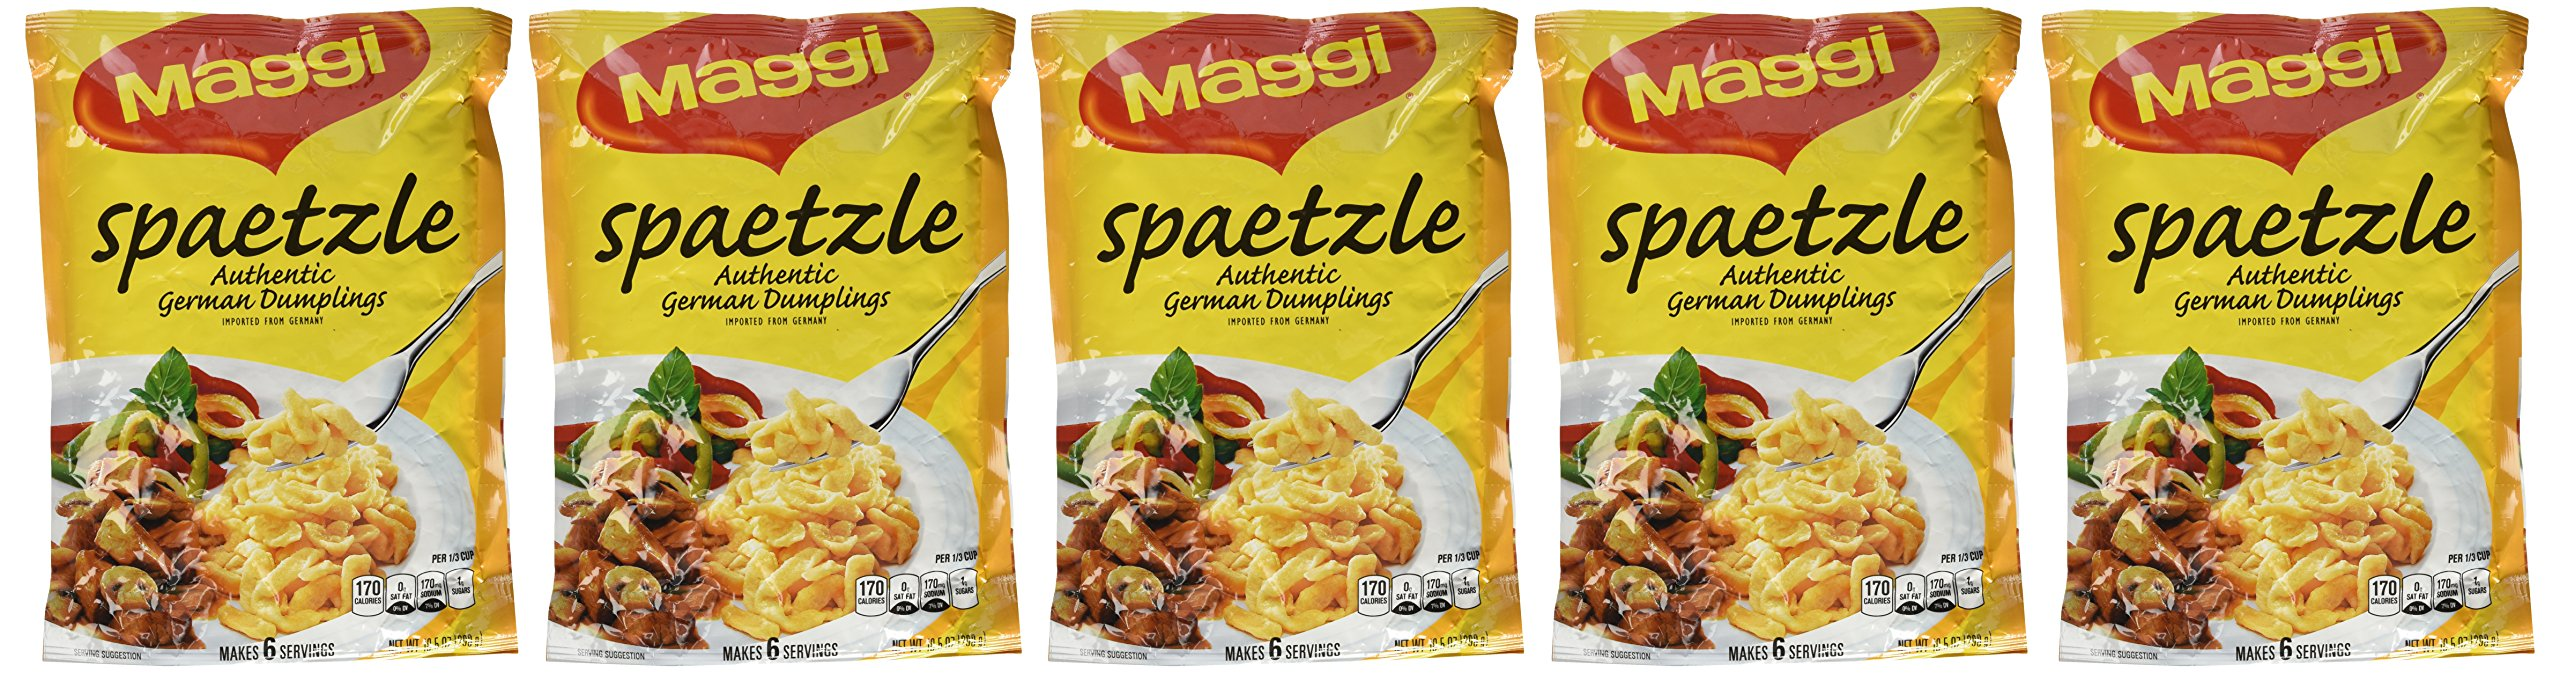 how to cook spaetzle noodles